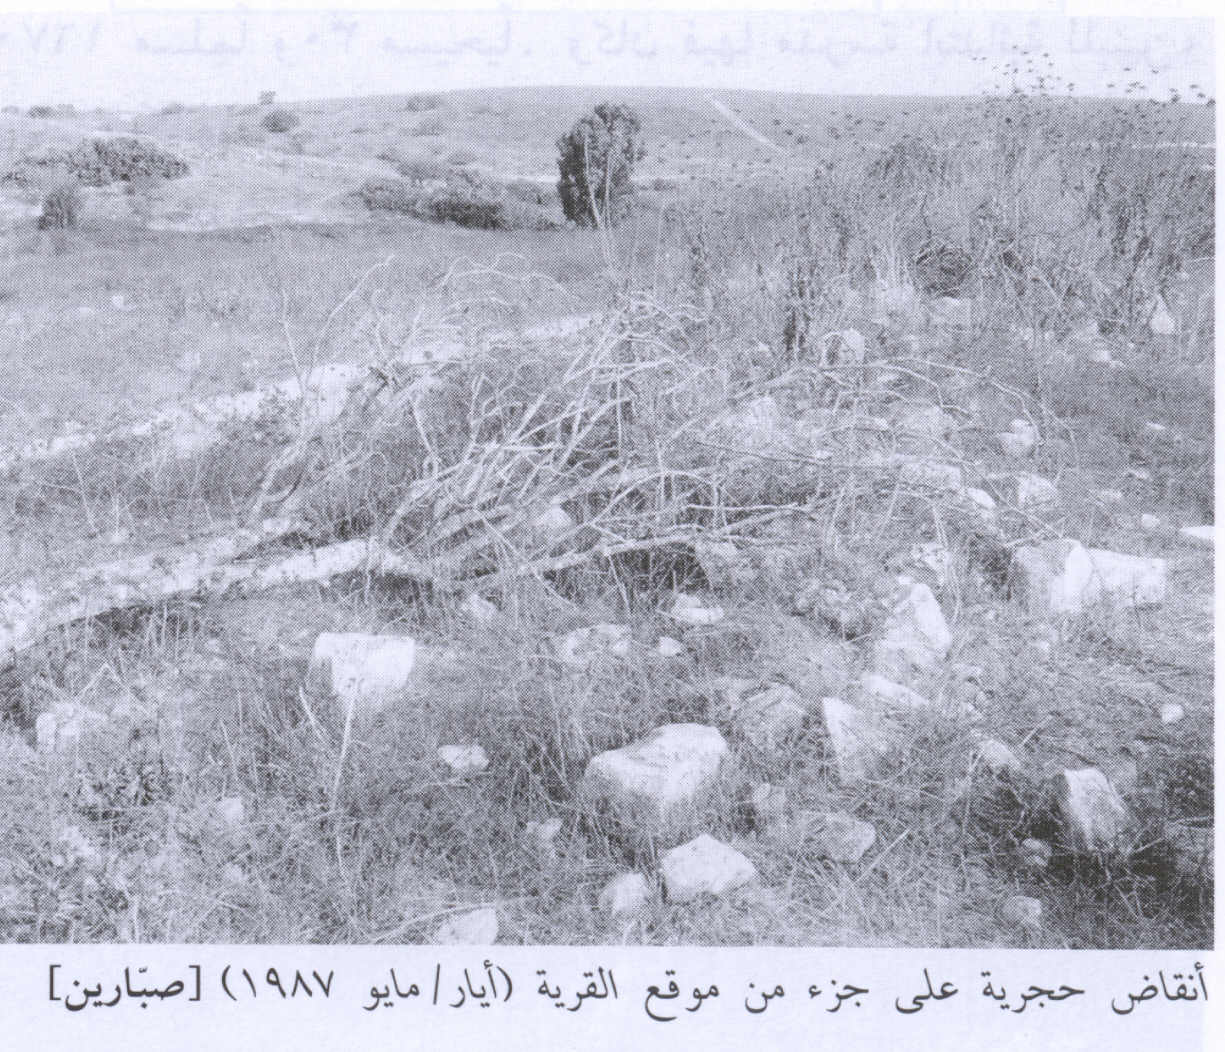 Sabbarin - صبارين : Village Stone Rubble In 1987